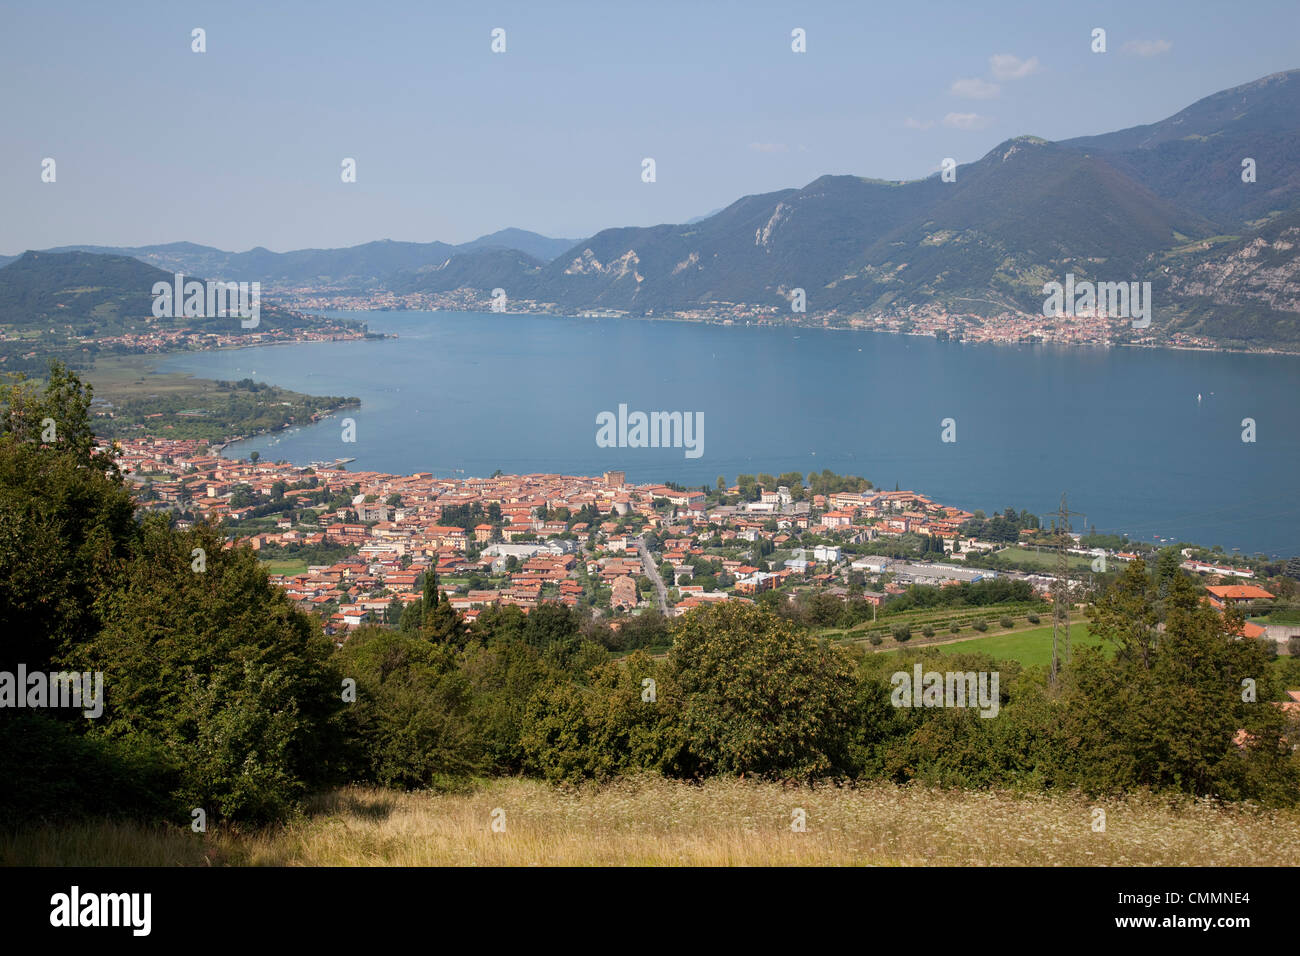 Iseo and view of Lake Iseo, Lombardy, Italian Lakes, Italy, Europe - Stock Image